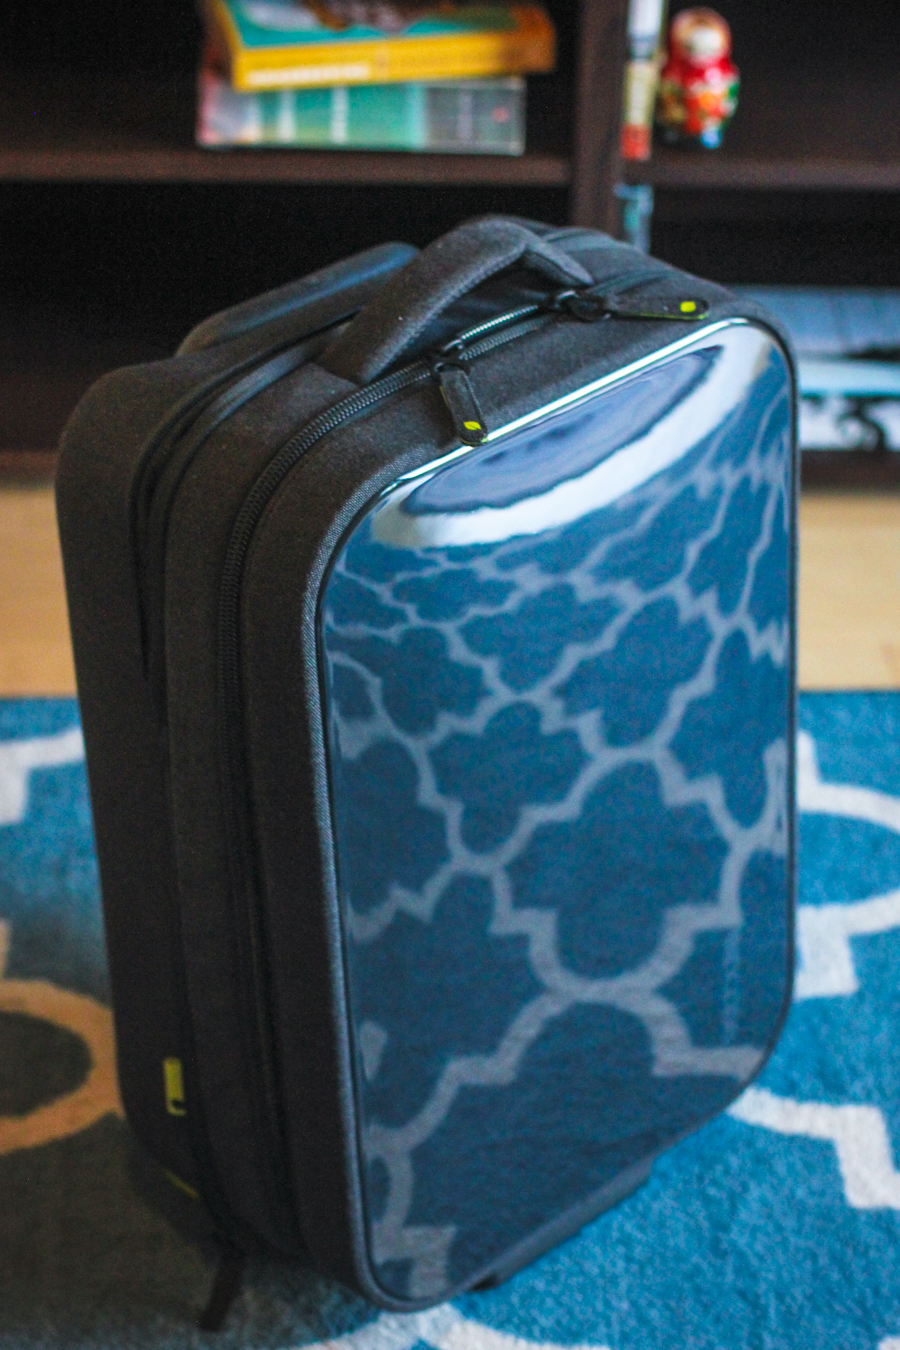 Traveling in Style: A Review of the Incase Hardshell Roller